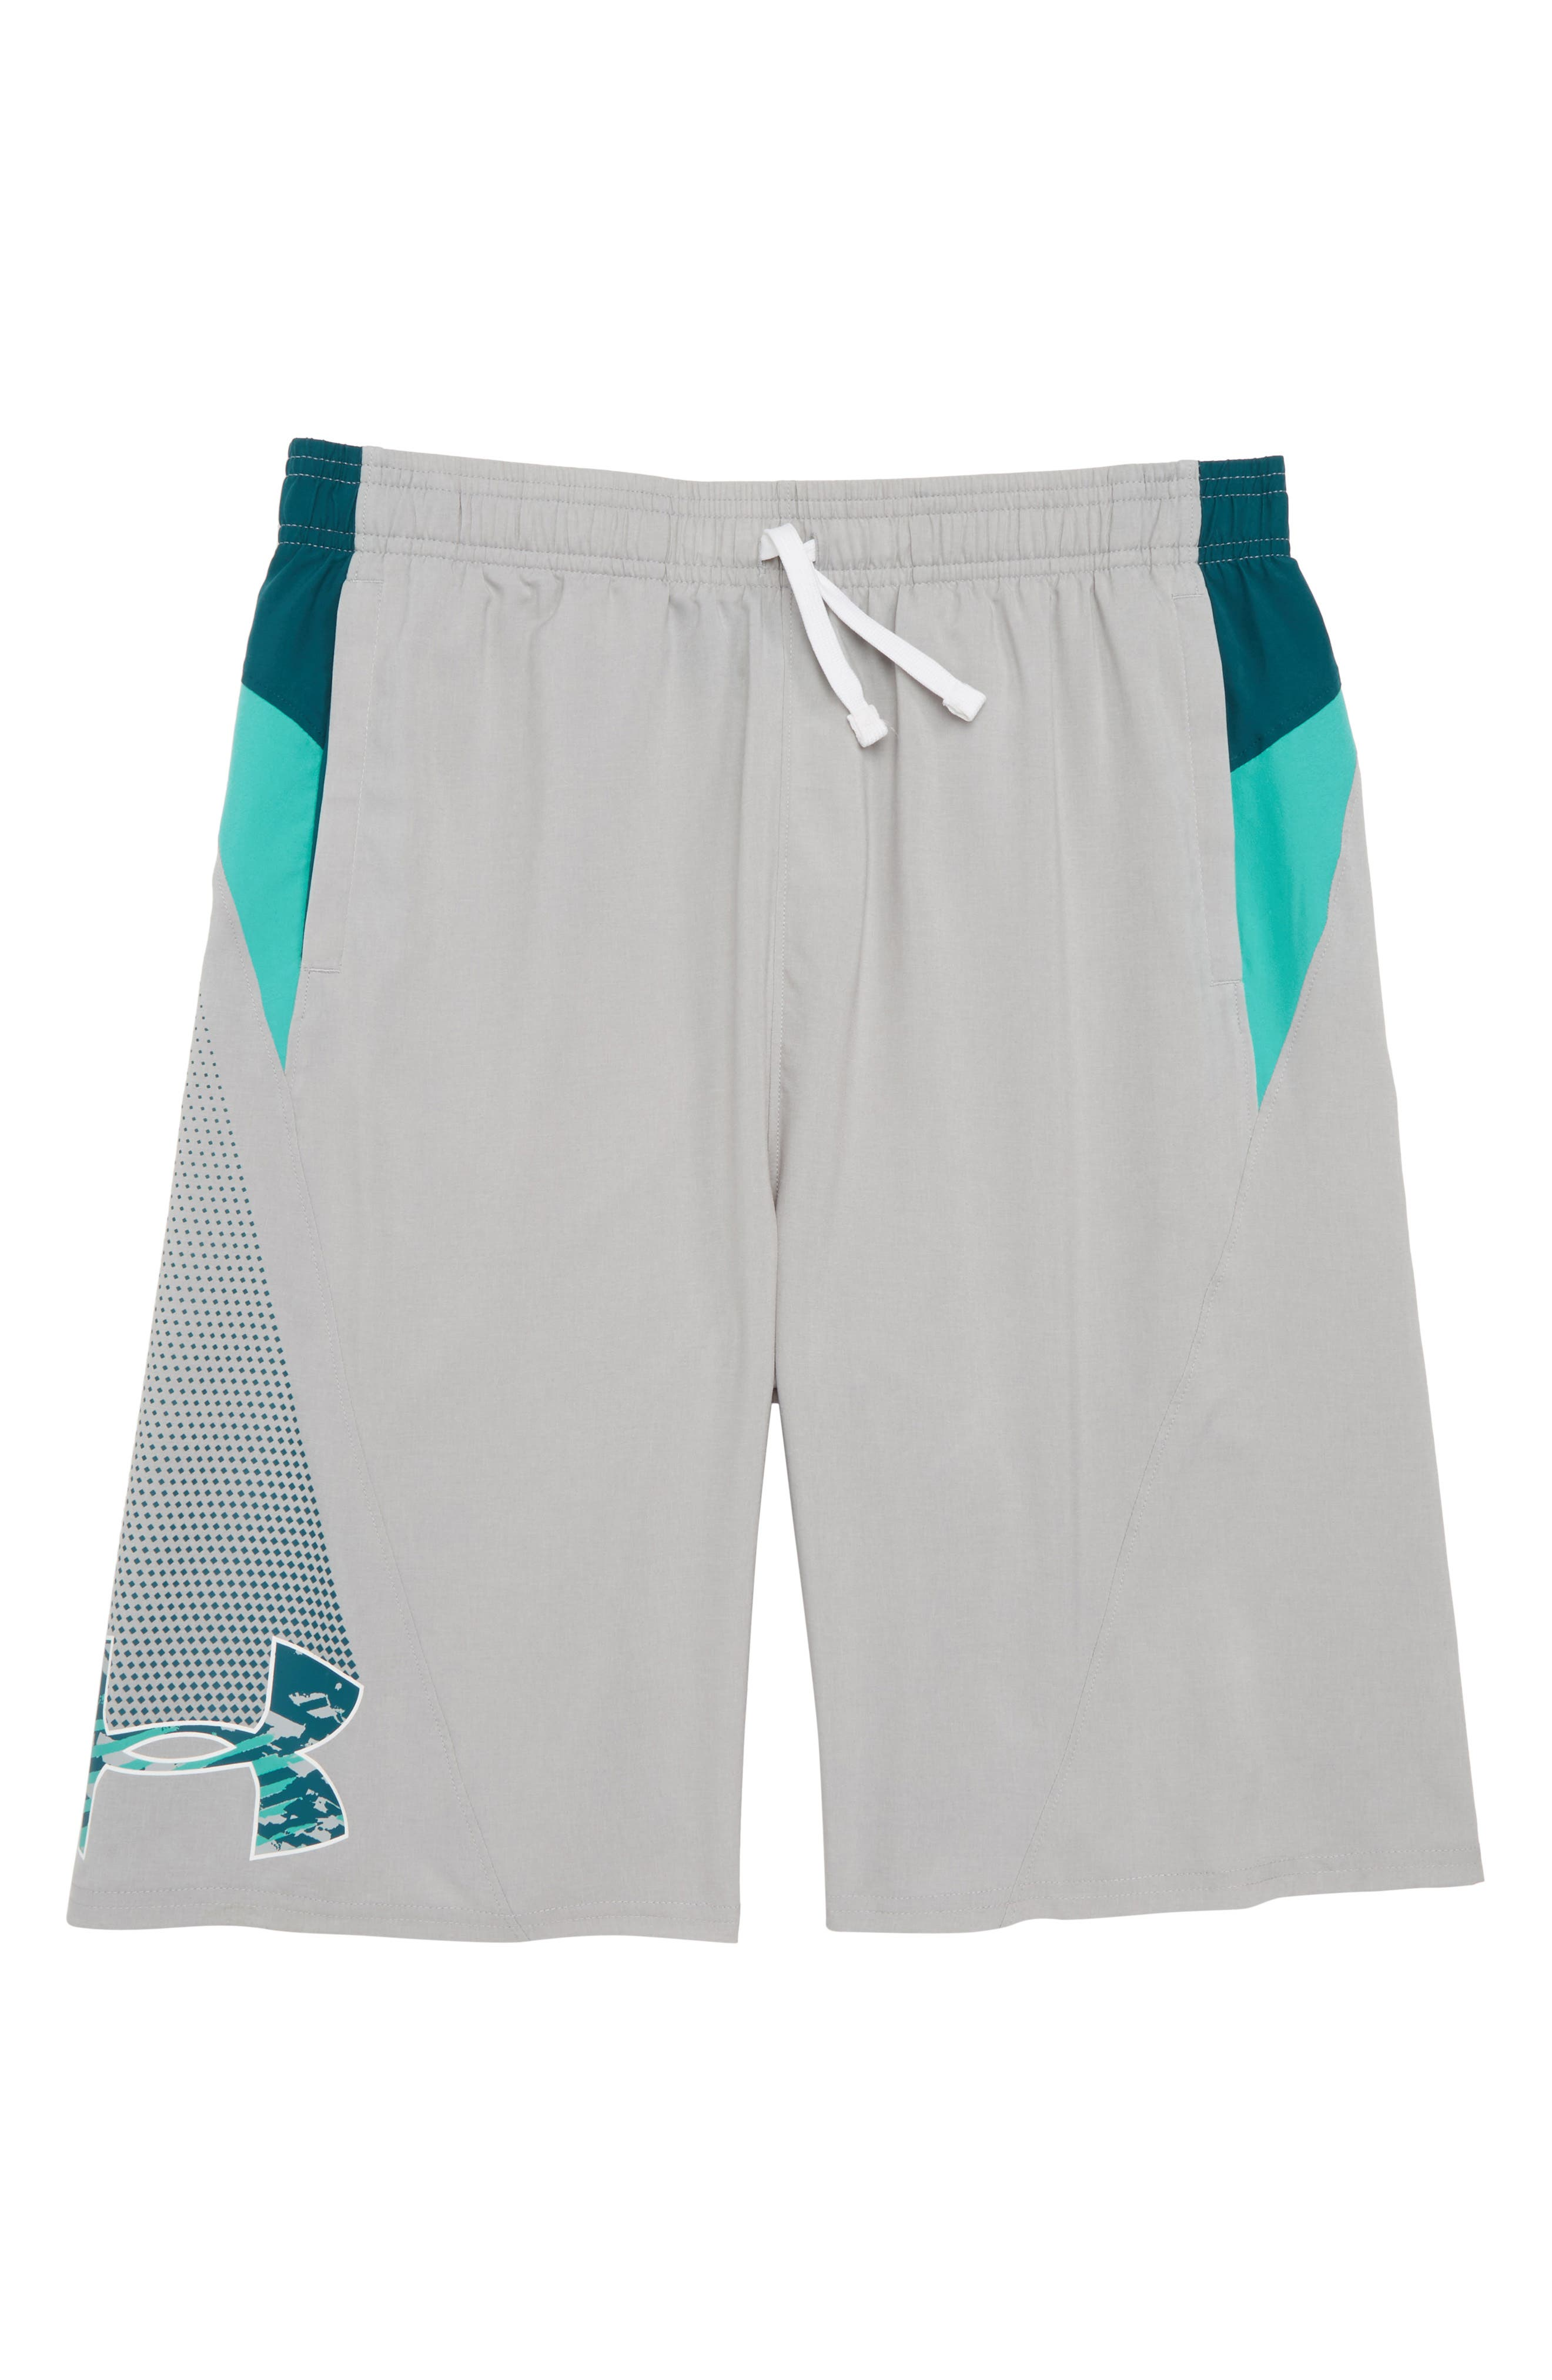 Evolve HeatGear<sup>®</sup> Woven Shorts,                         Main,                         color, Overcast Gray/ Tourmaline Teal